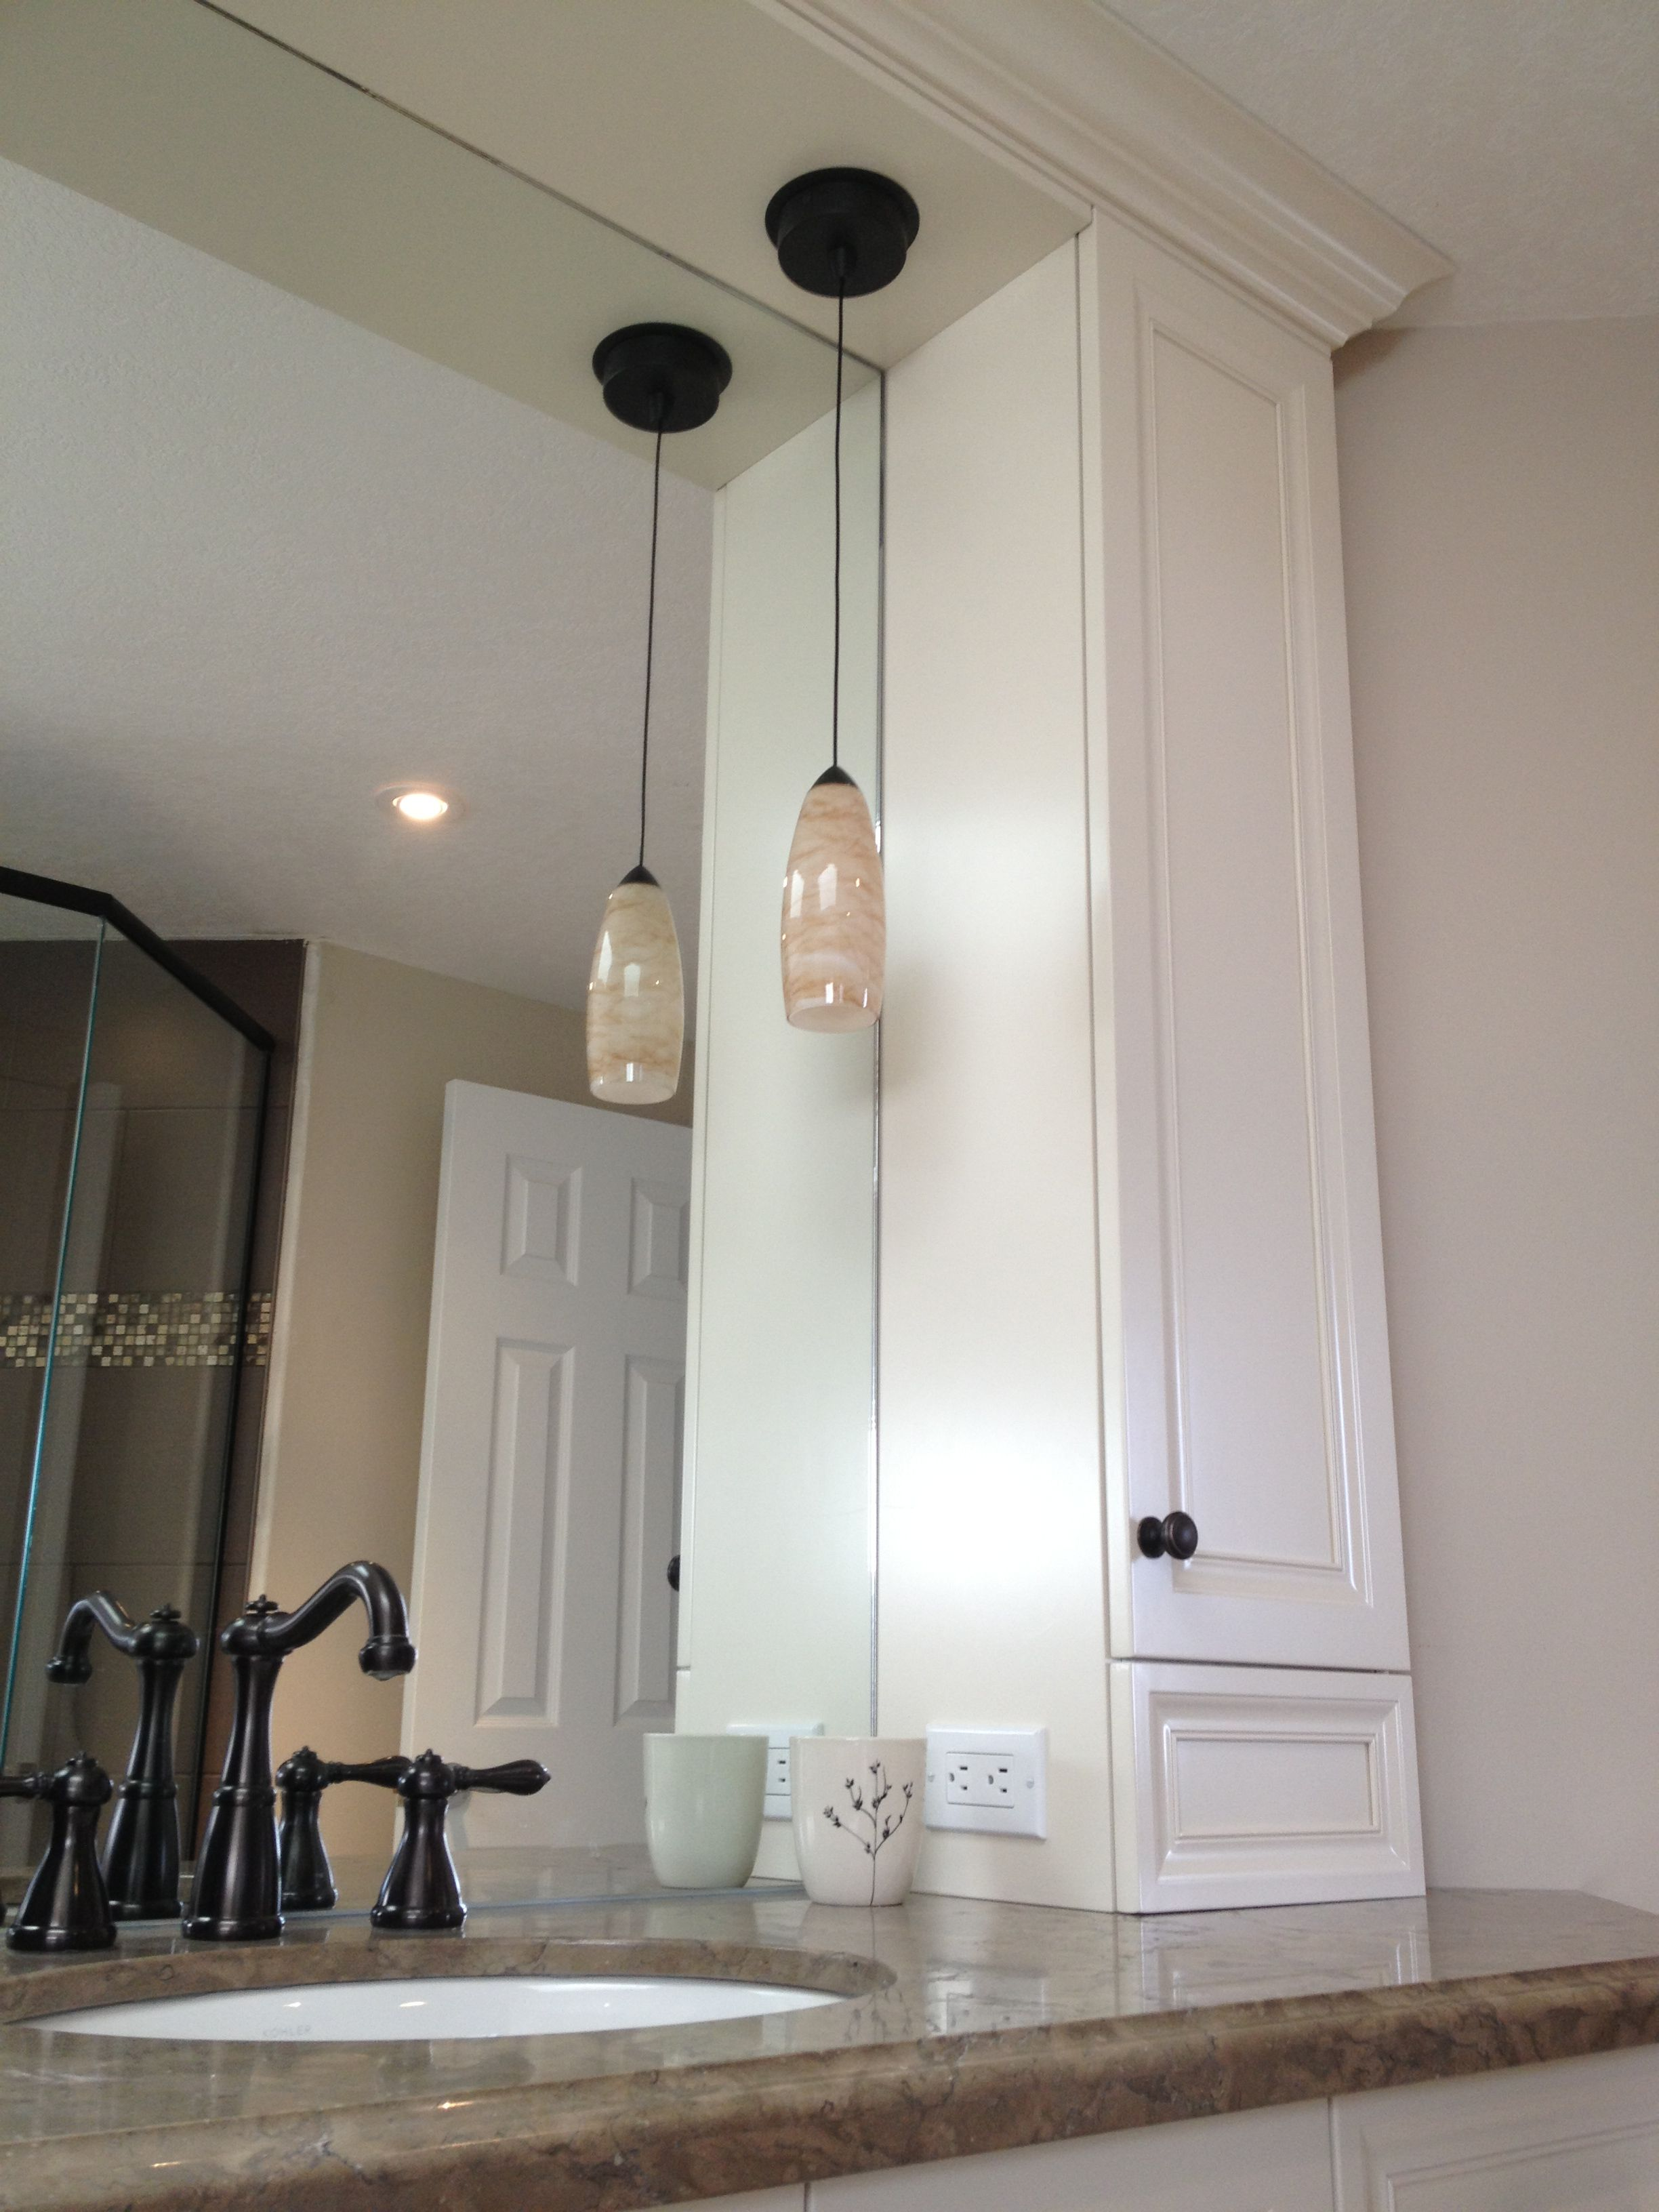 Bathroom pendant light - hand-blown glass halogen | home love ...